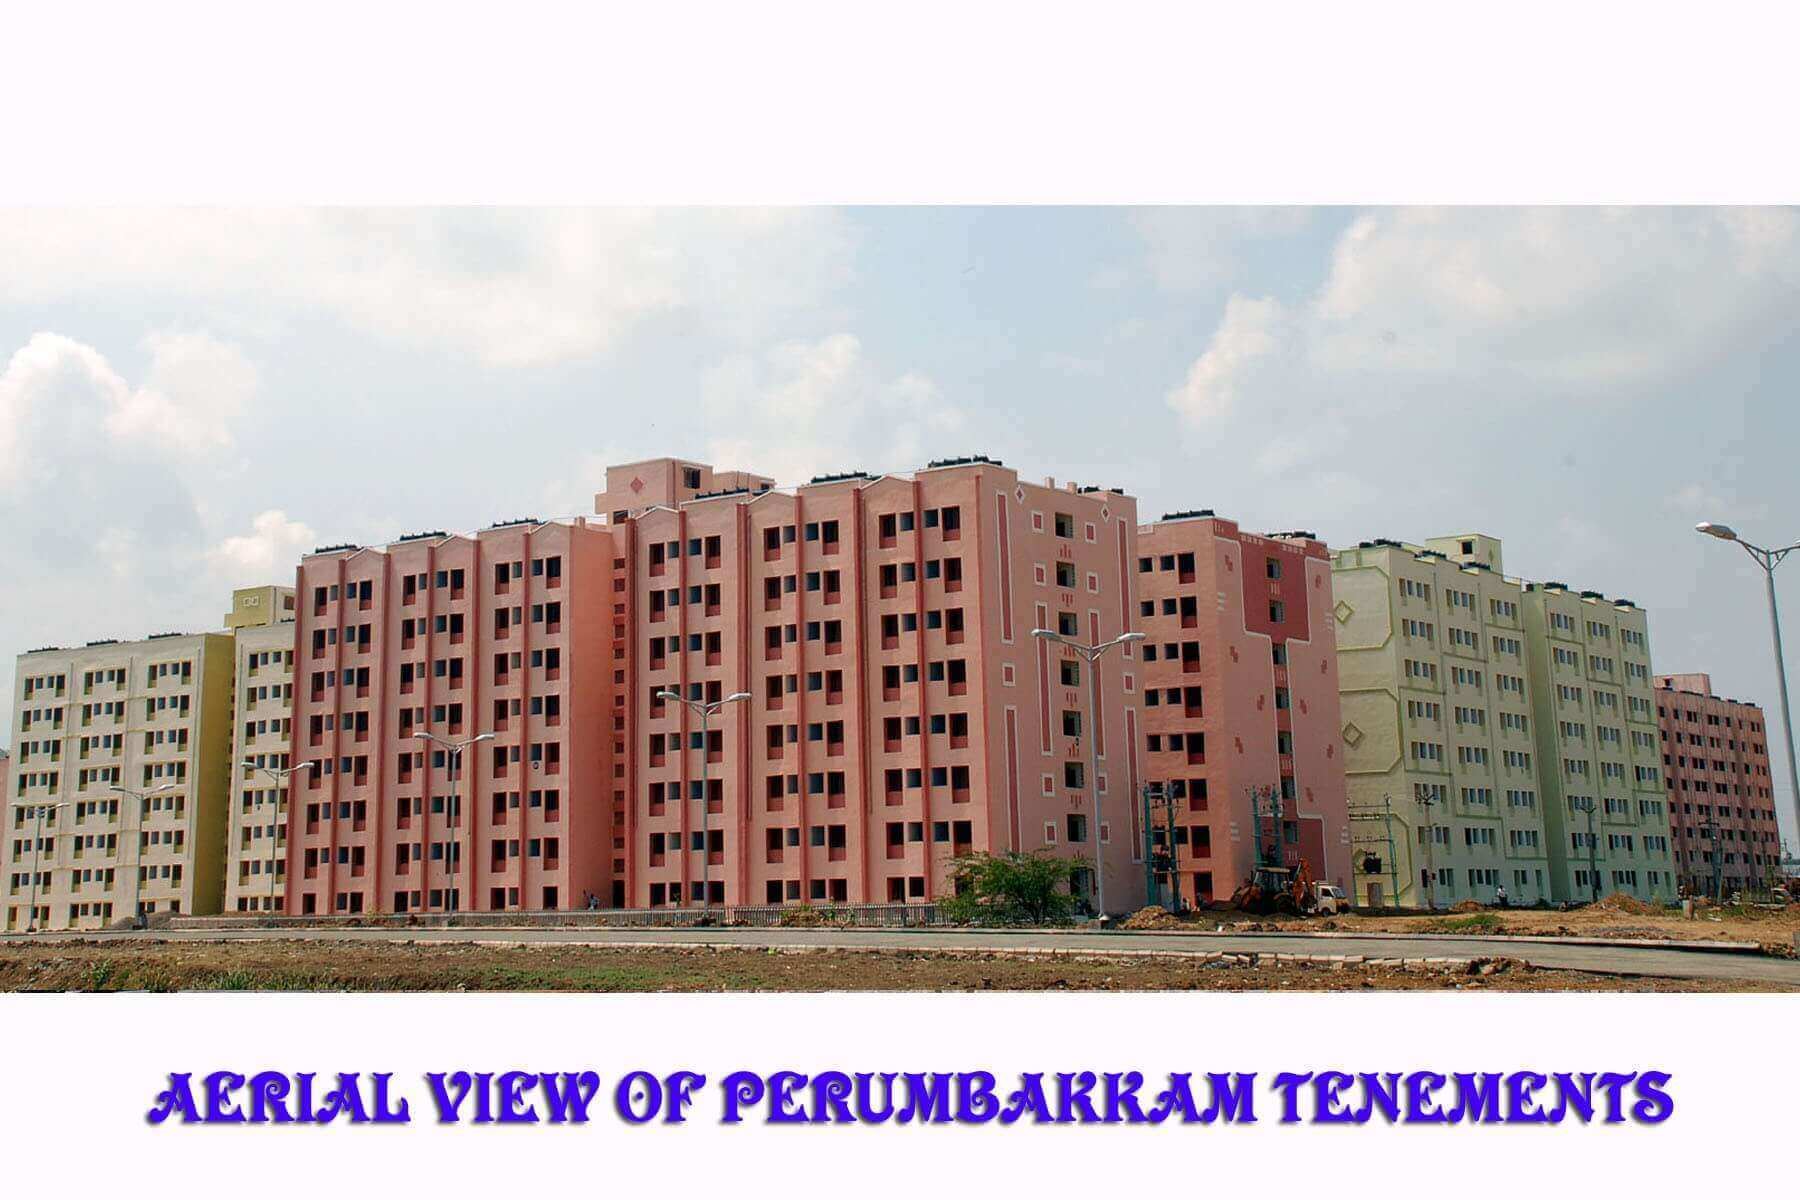 tnscb tenemental photos – tamilnadu slum clearance board